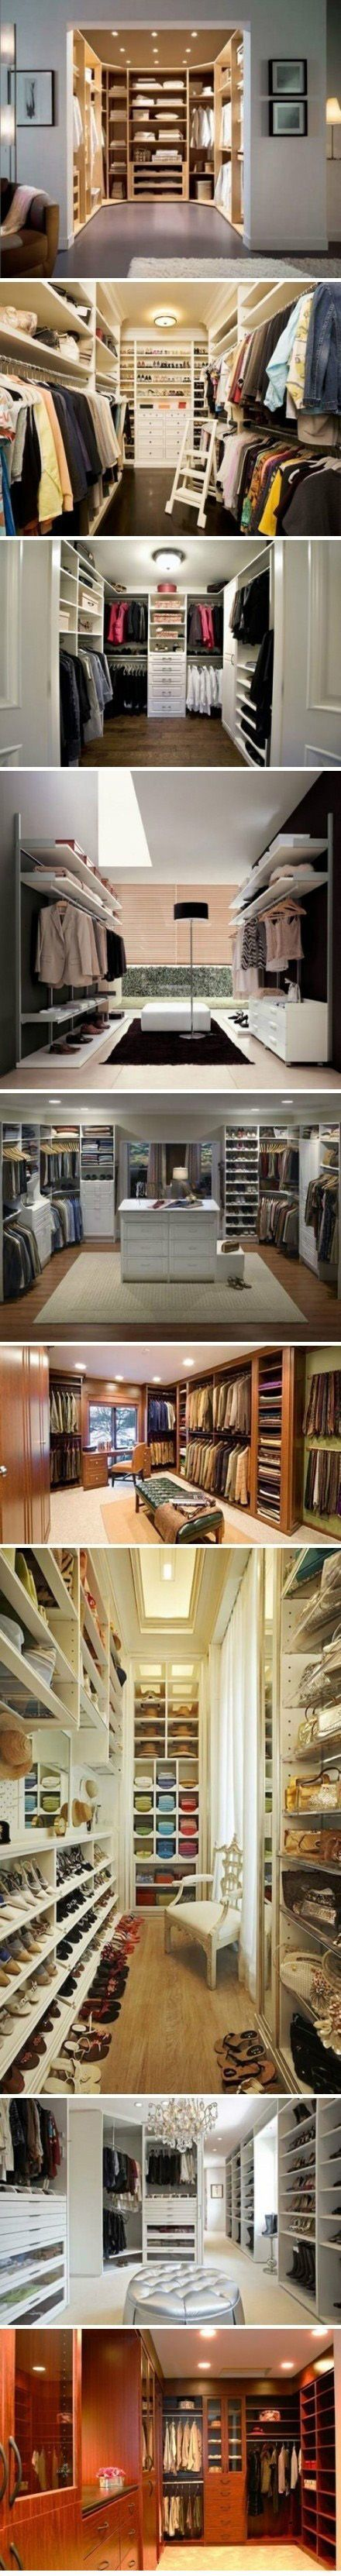 epic closets. imagine how much stuff i could have!!